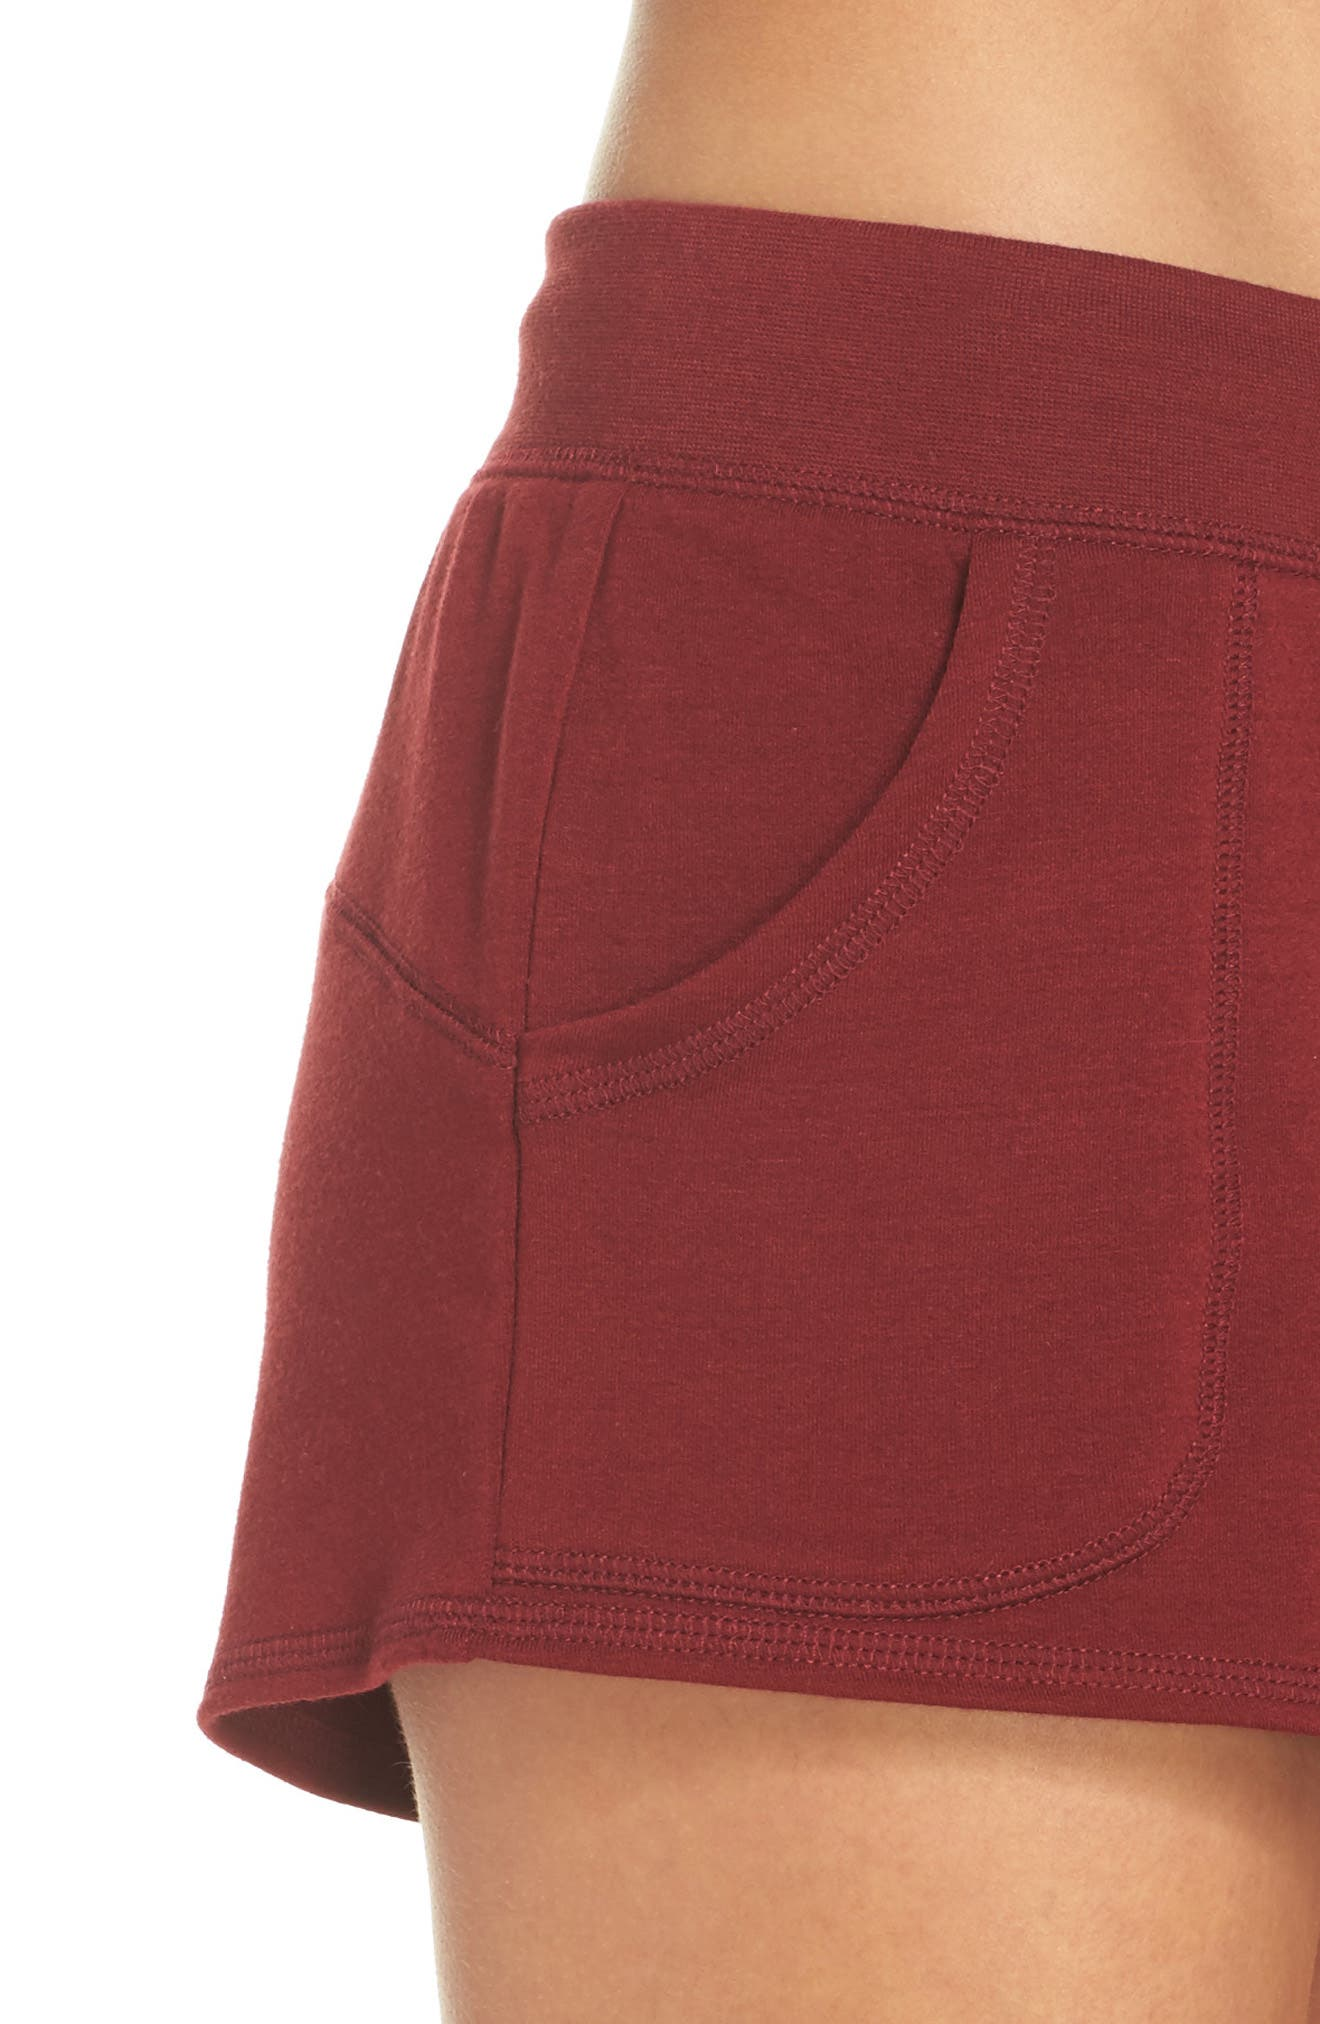 Down To The Details Lounge Shorts,                             Alternate thumbnail 5, color,                             Red Grape